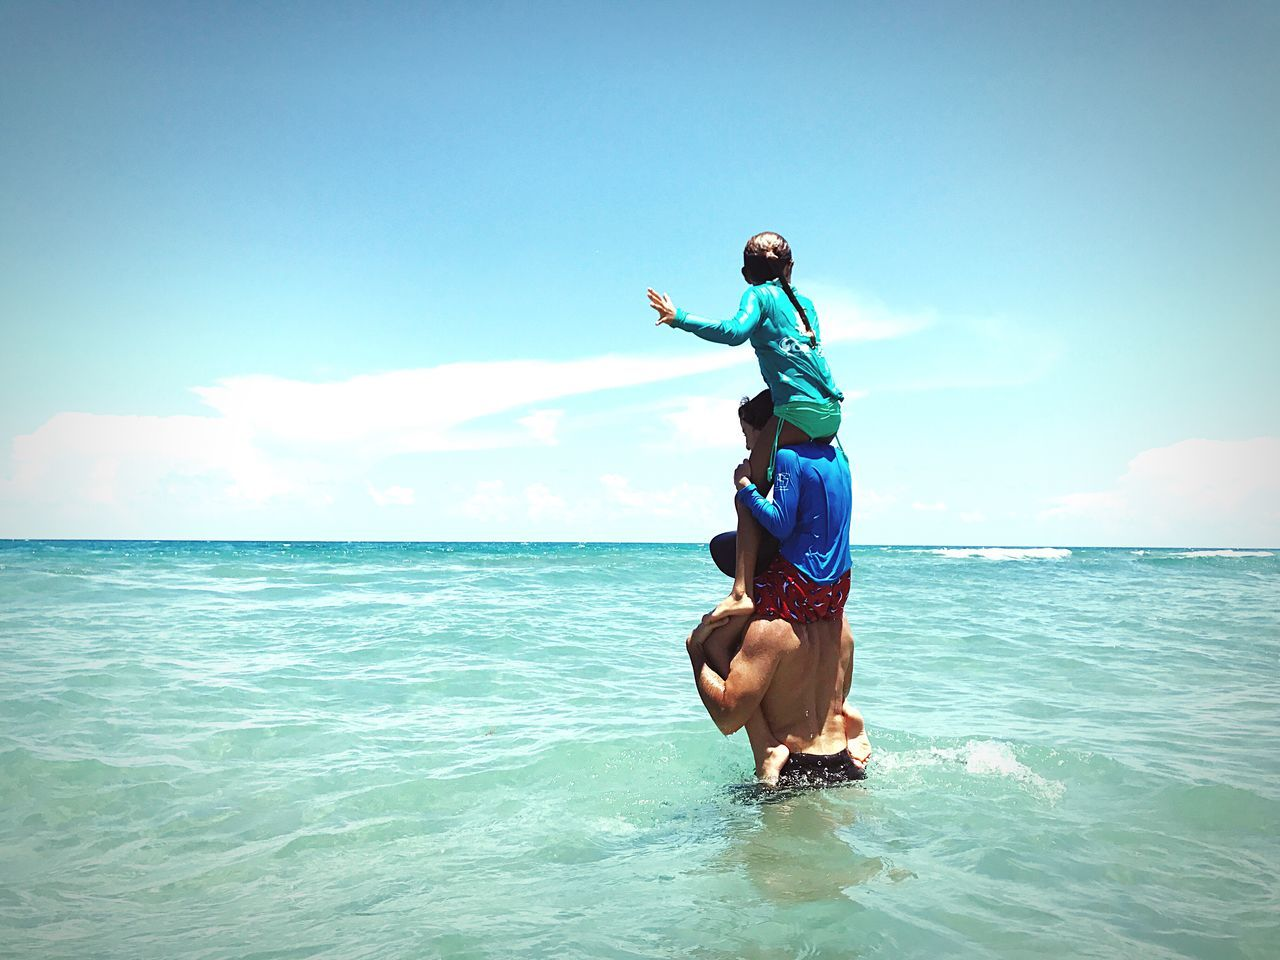 sea, sky, horizon over water, real people, nature, water, full length, mid adult men, beauty in nature, rear view, day, mid adult, leisure activity, outdoors, lifestyles, cloud - sky, scenics, blue, one person, beach, men, vacations, people